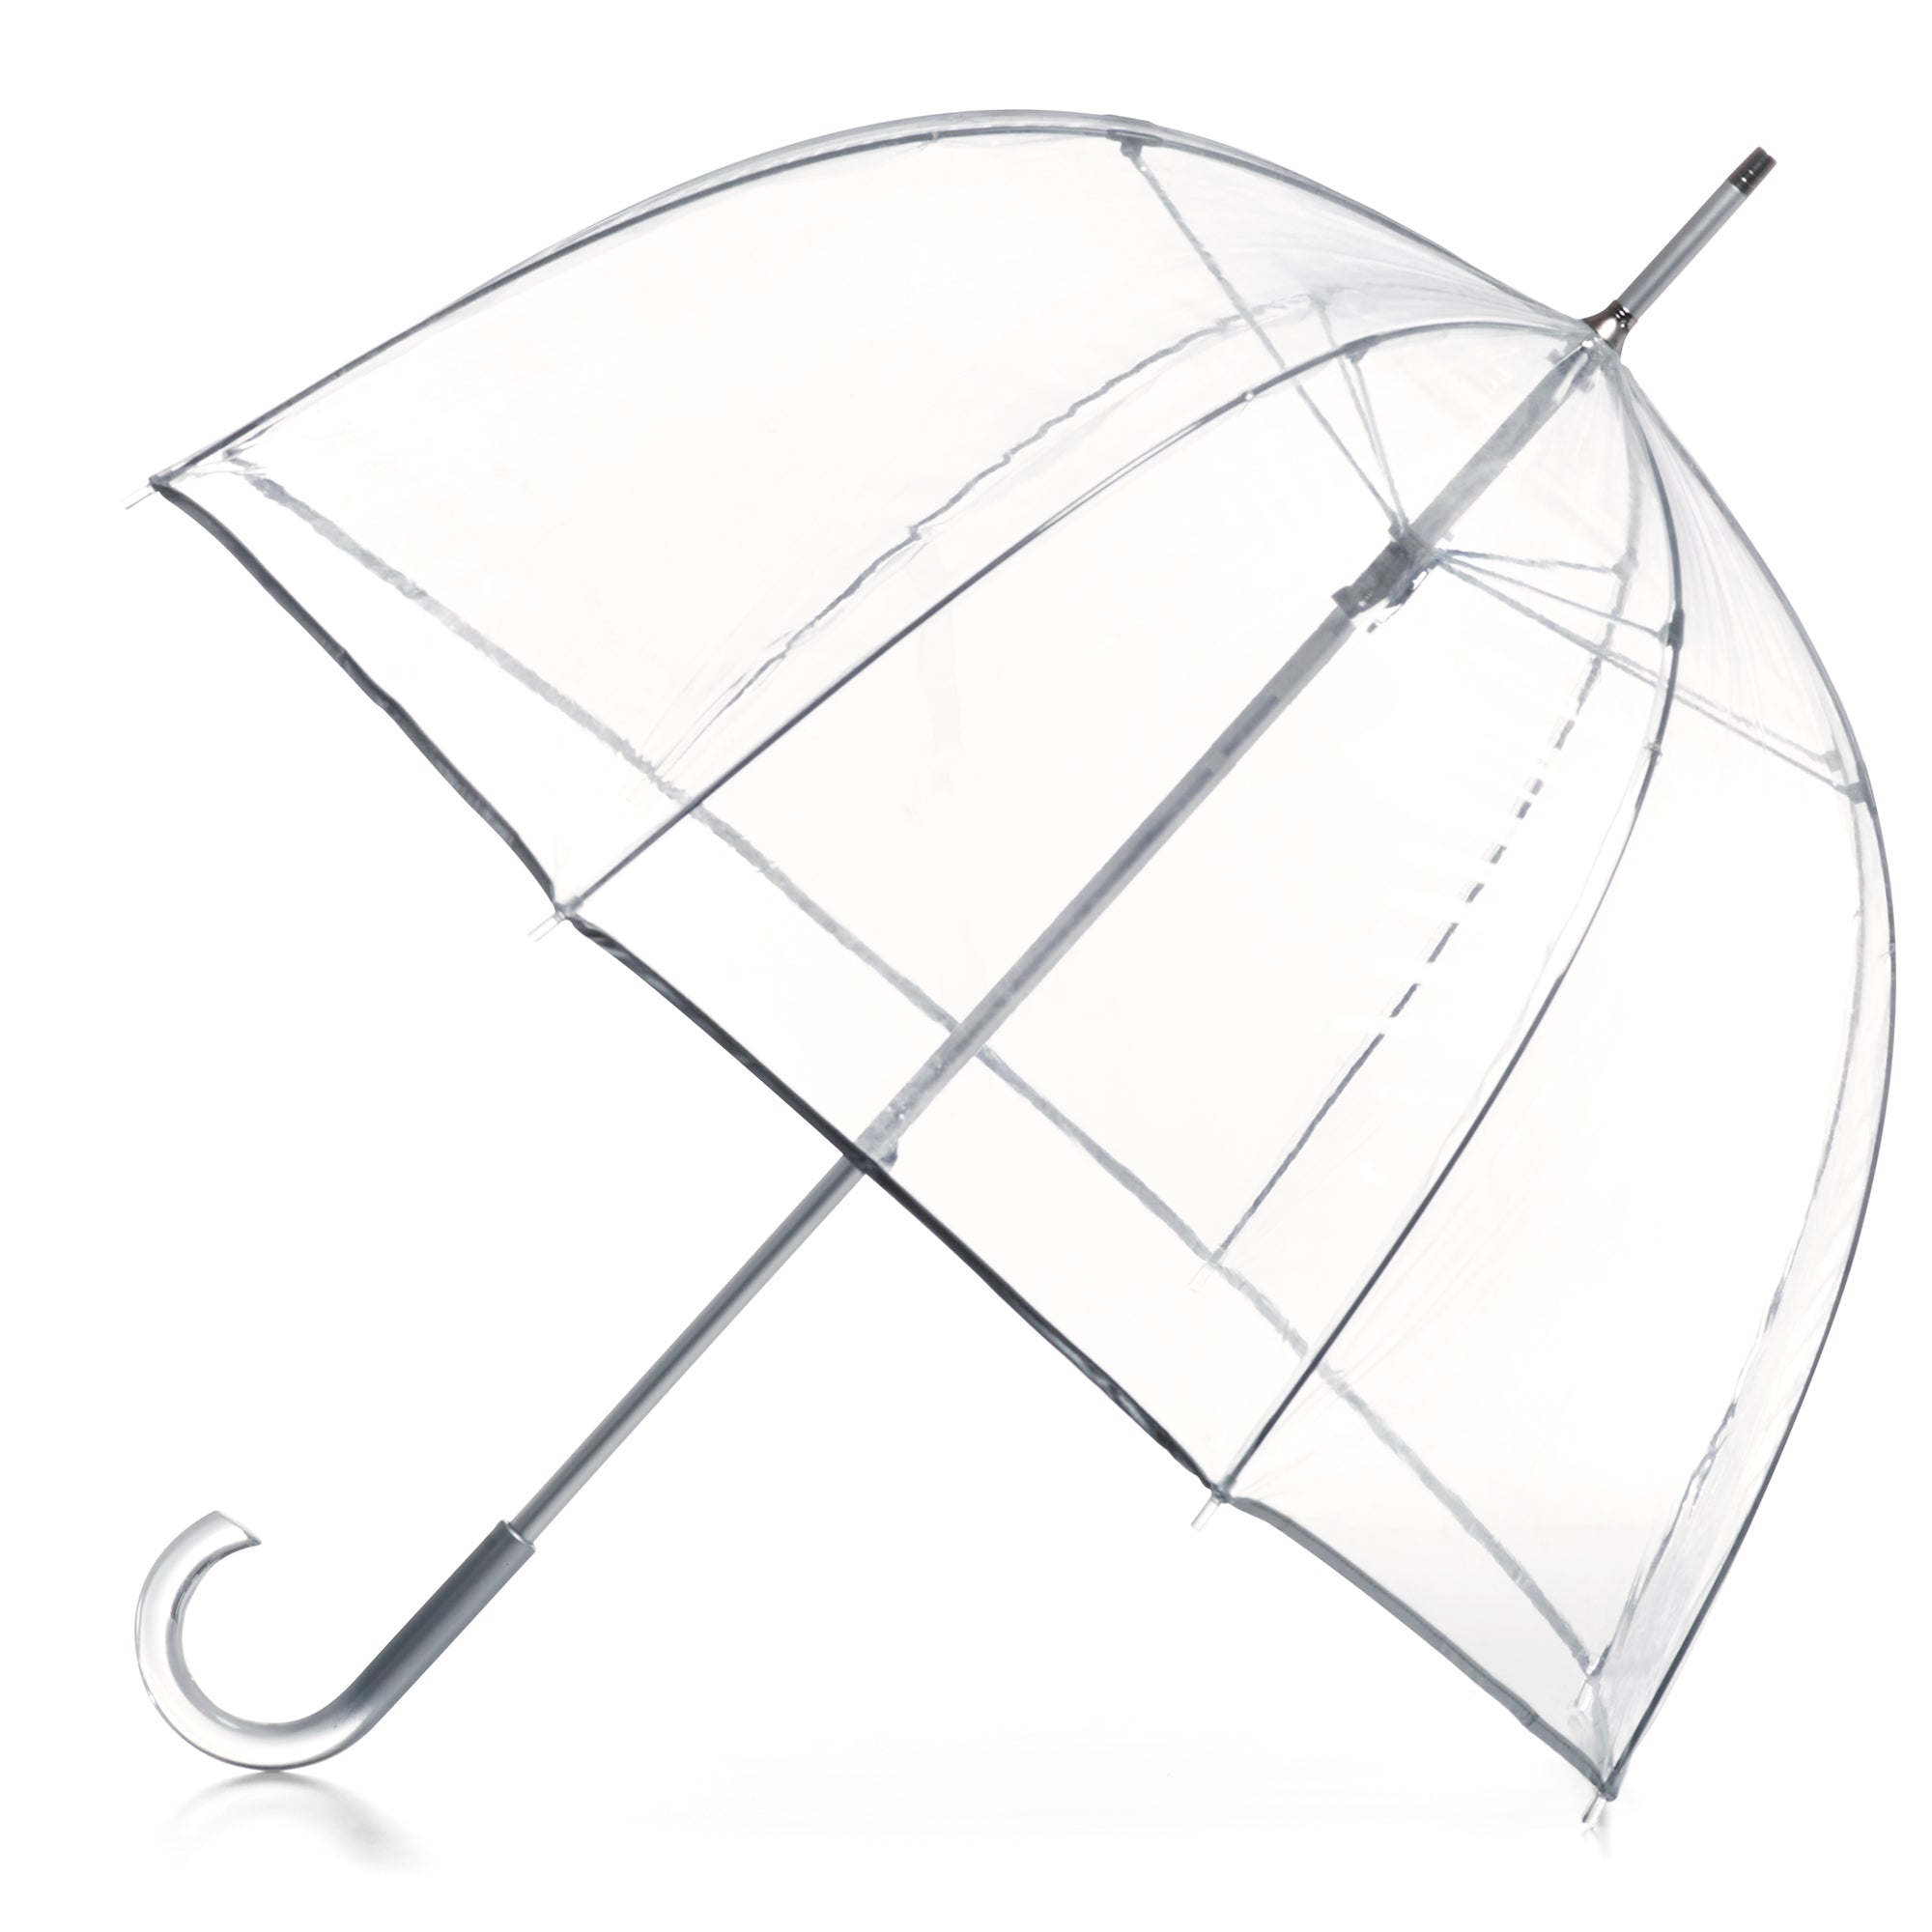 Signature Clear Bubble Umbrella open side view